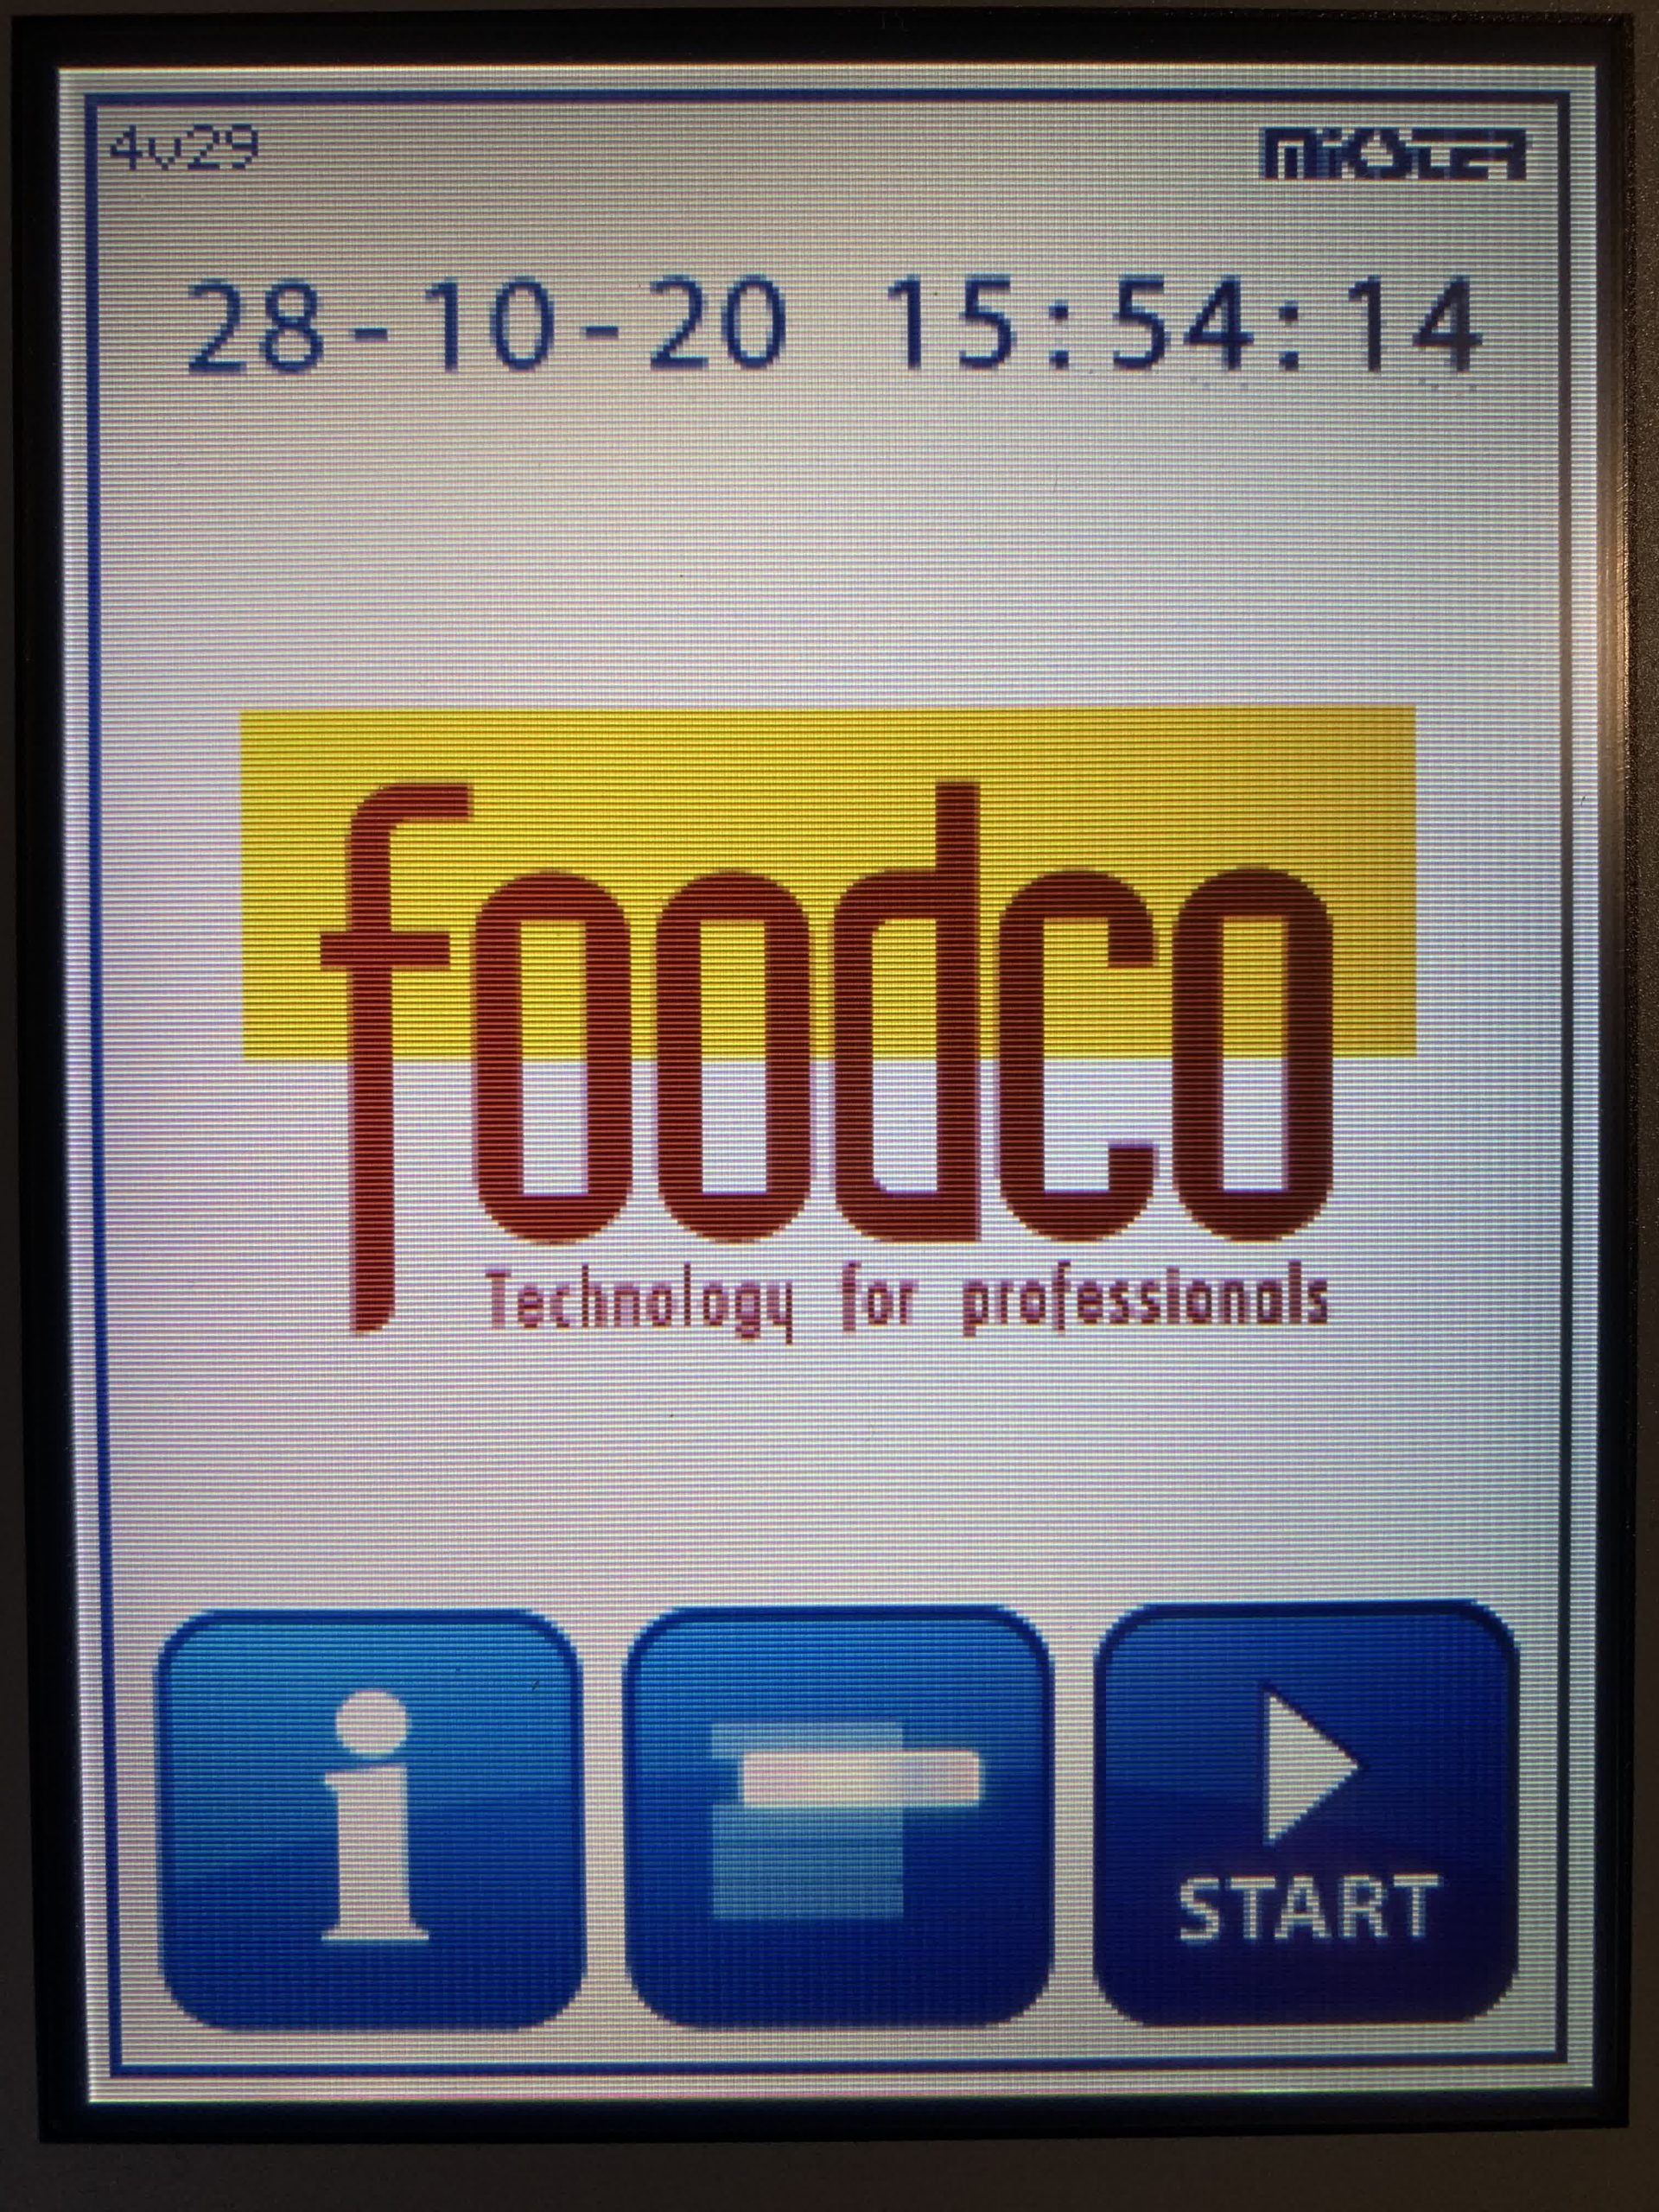 Foodco Global Machinery - Food processing controller Systems iMAX 500 - iMAX 1000 - PLC